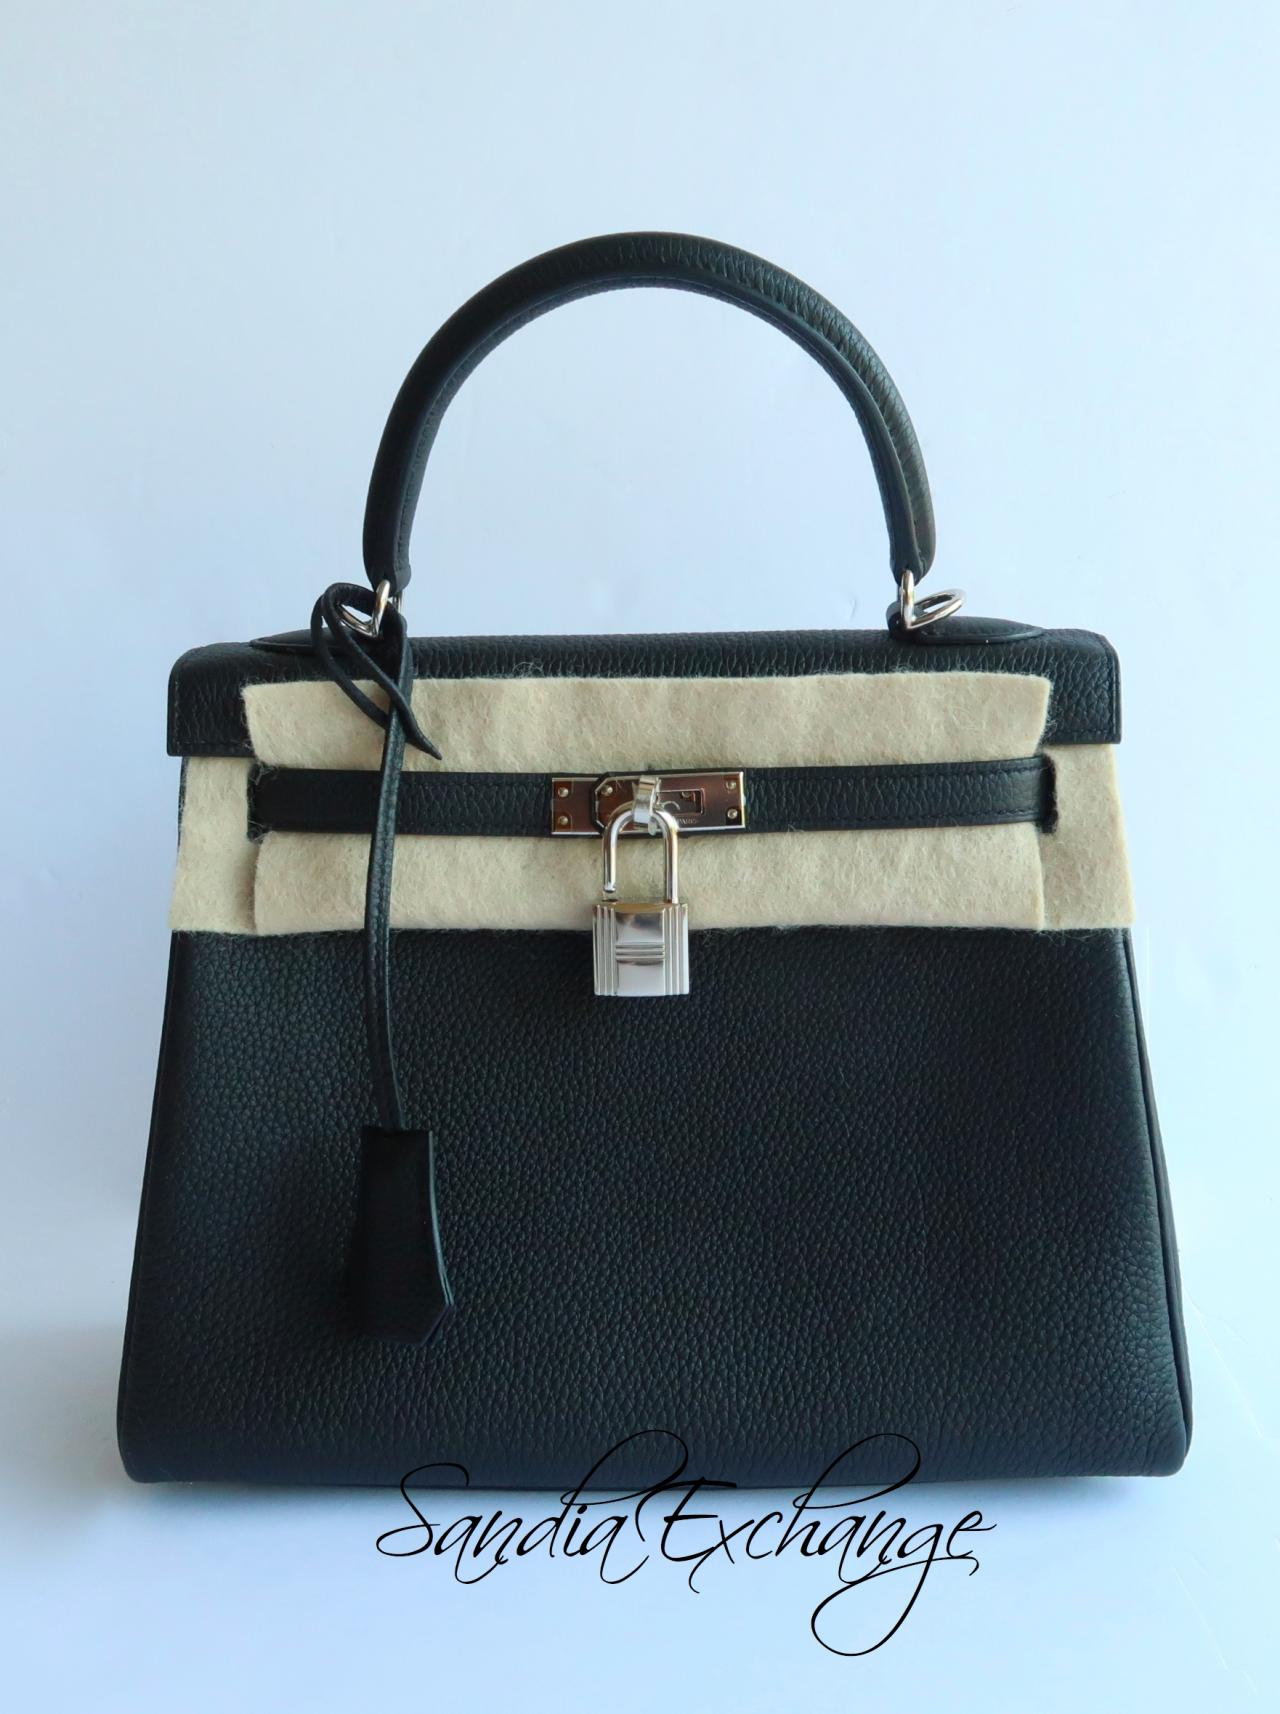 Hermes Kelly 25 cm Black Togo Palladium Hardware Authentic HERMÈS ... 49974cdb9b98b